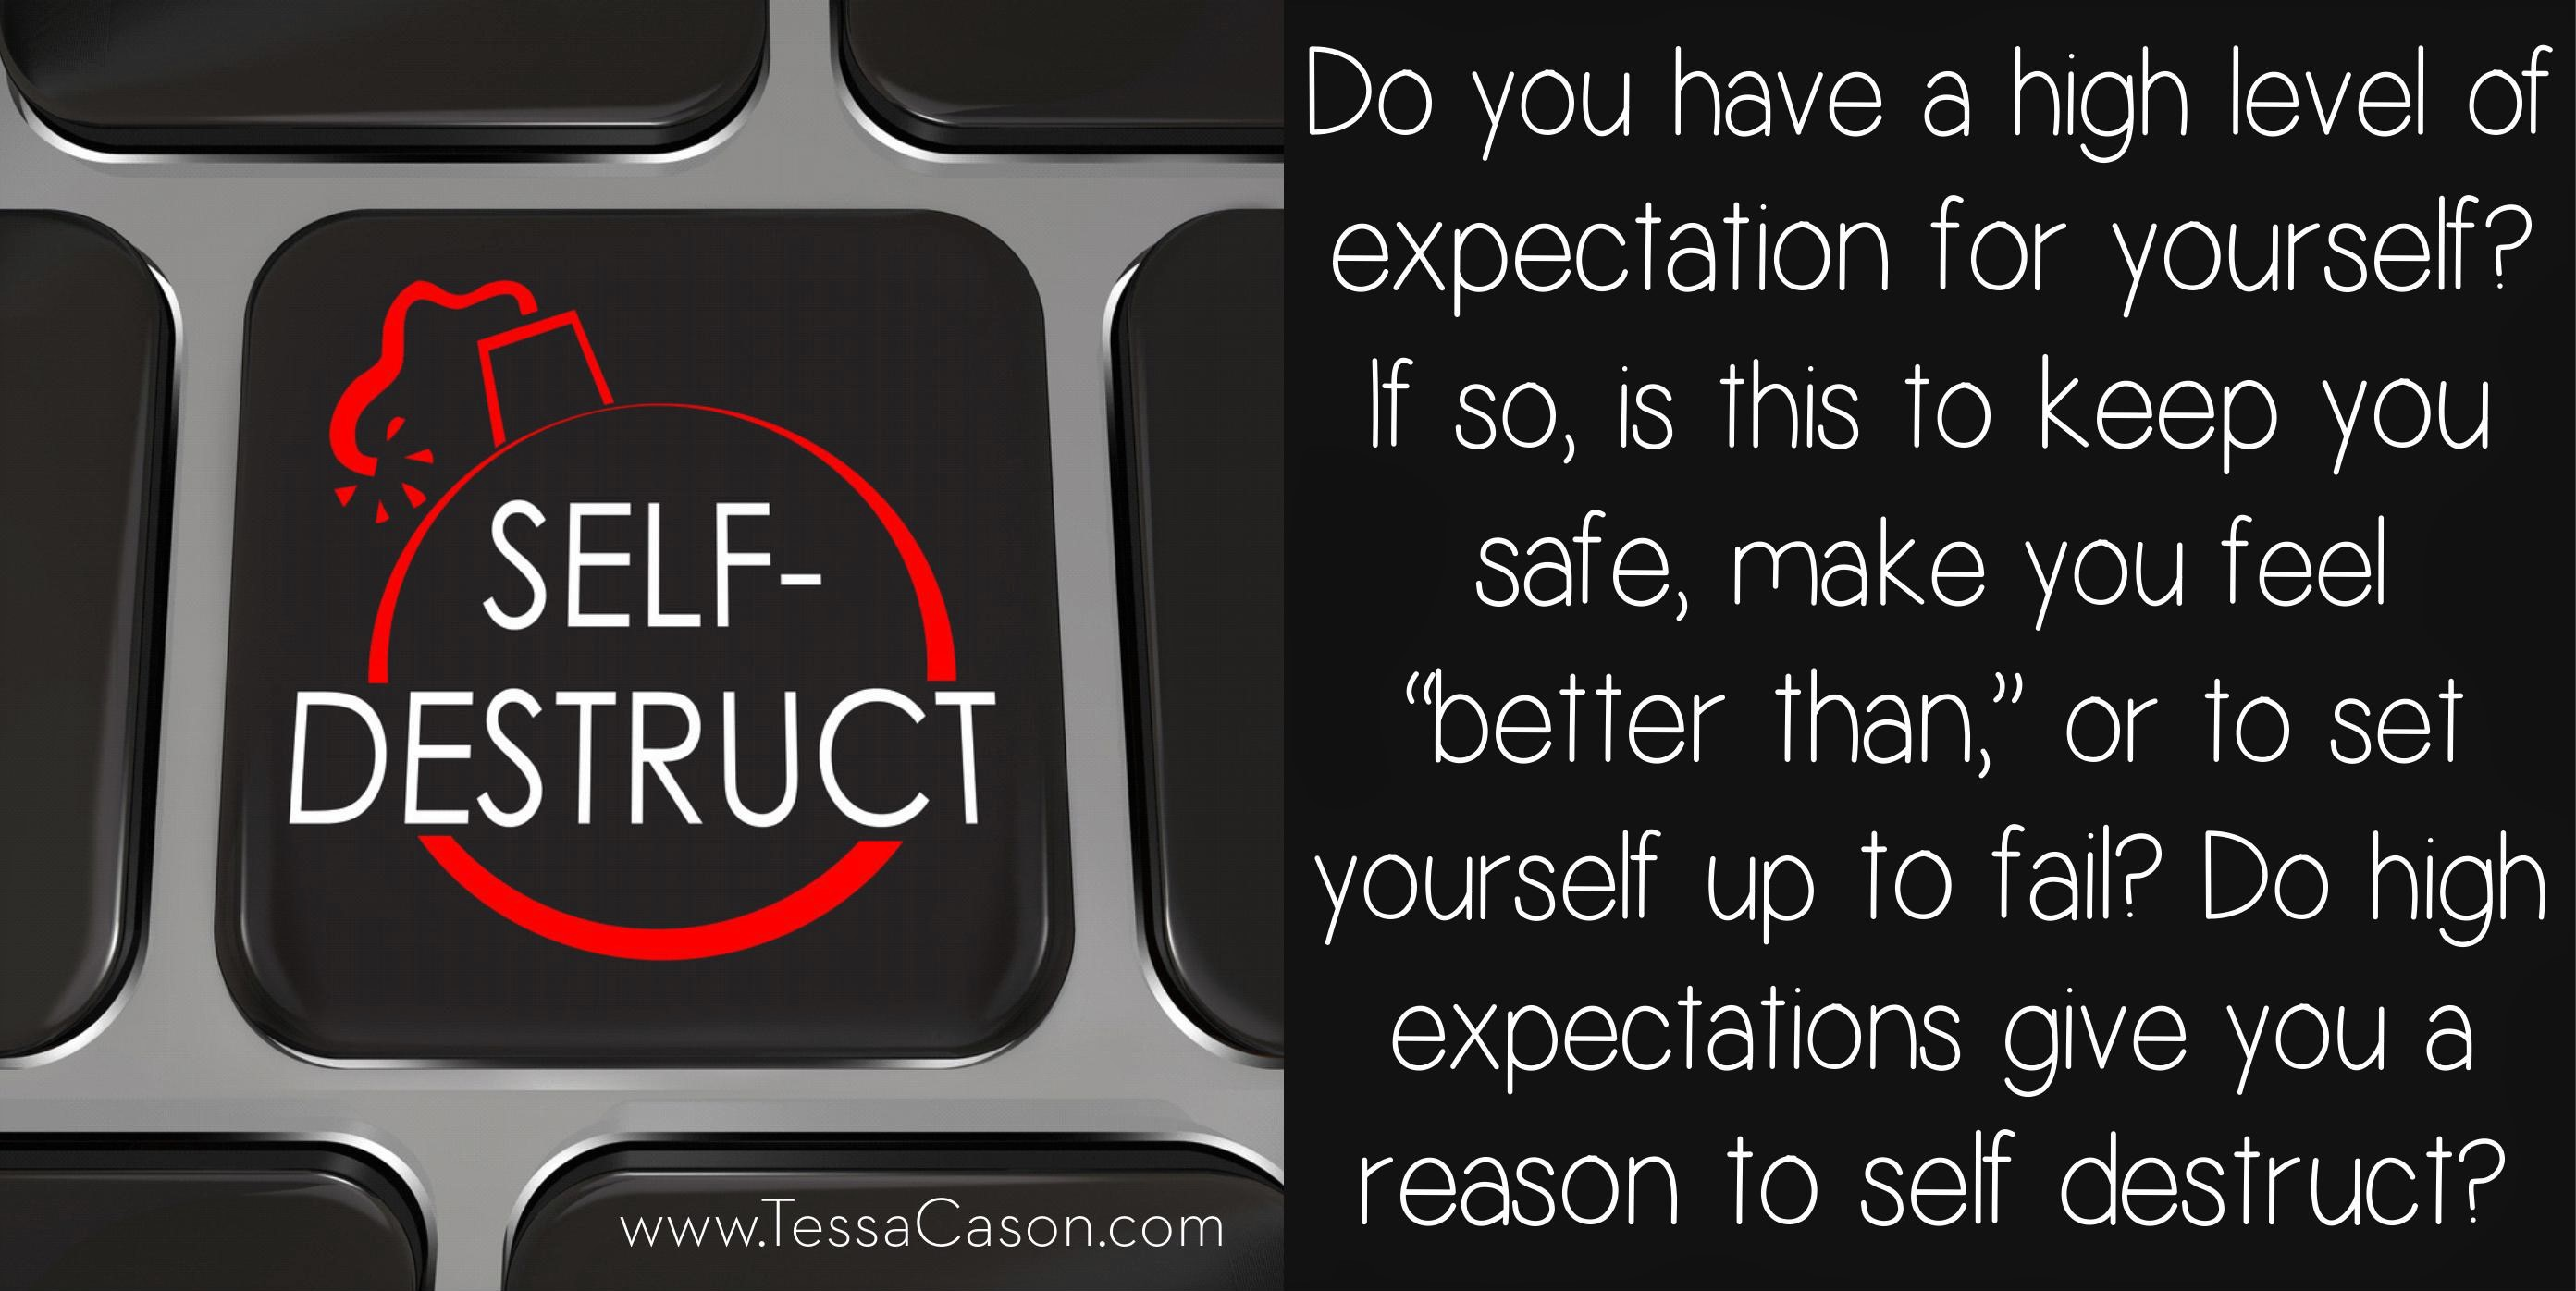 Do you have a high expectation of yourself